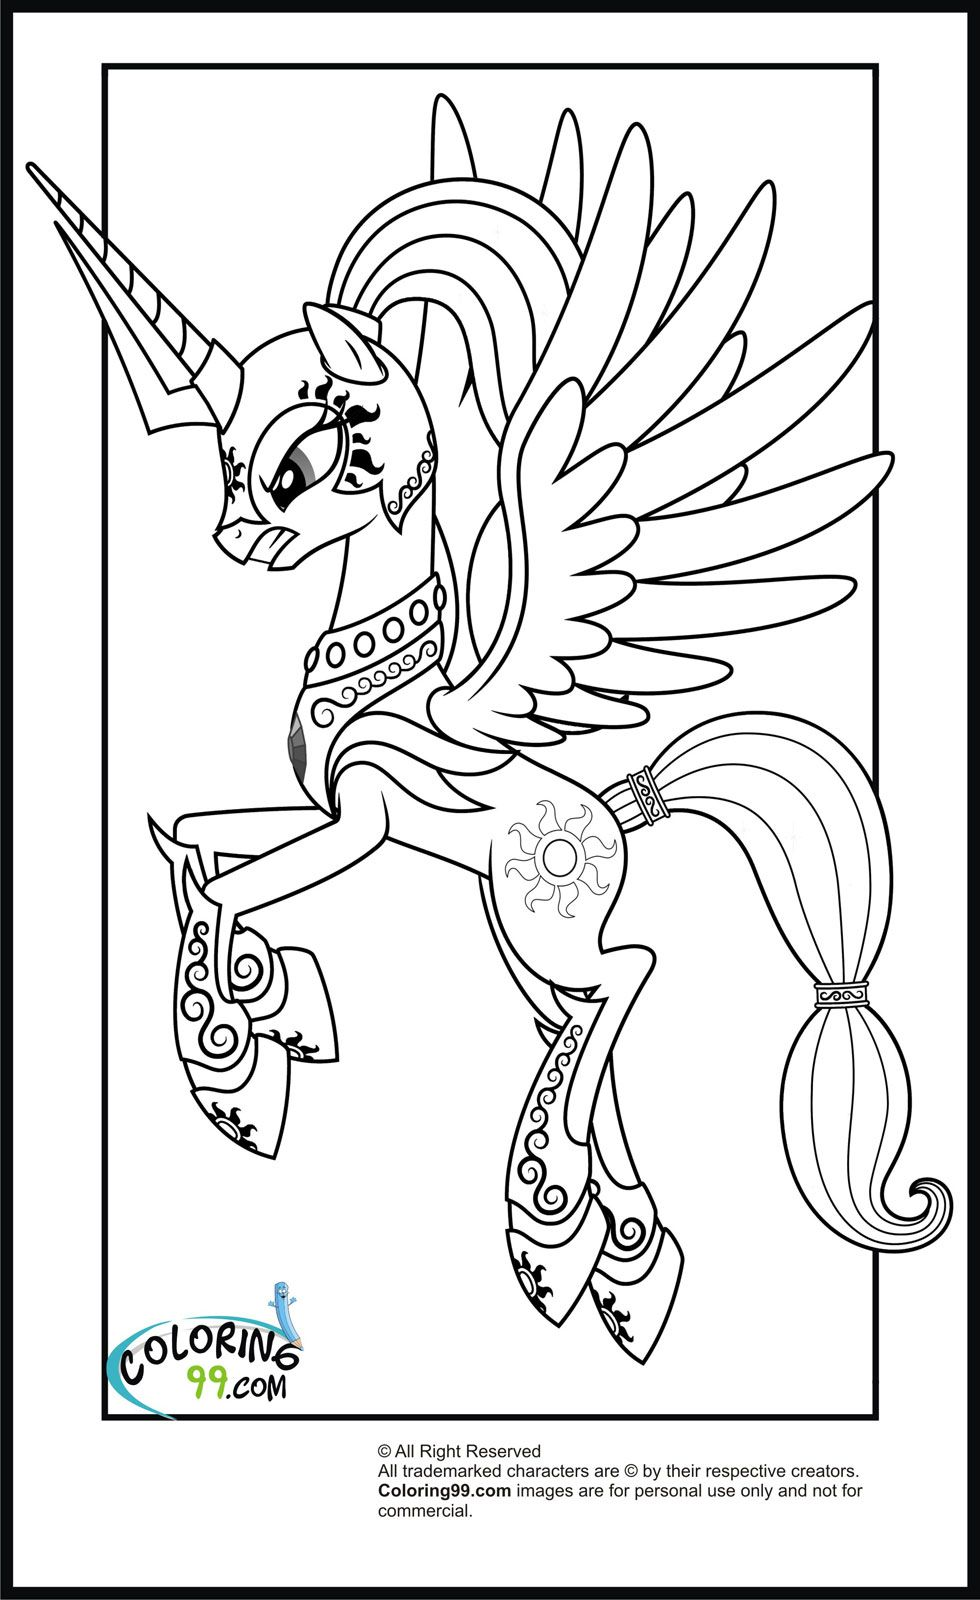 Ausmalbilder My Little Pony Der Film : My Little Pony Coloring Pages My Little Pony Daybreaker Coloring